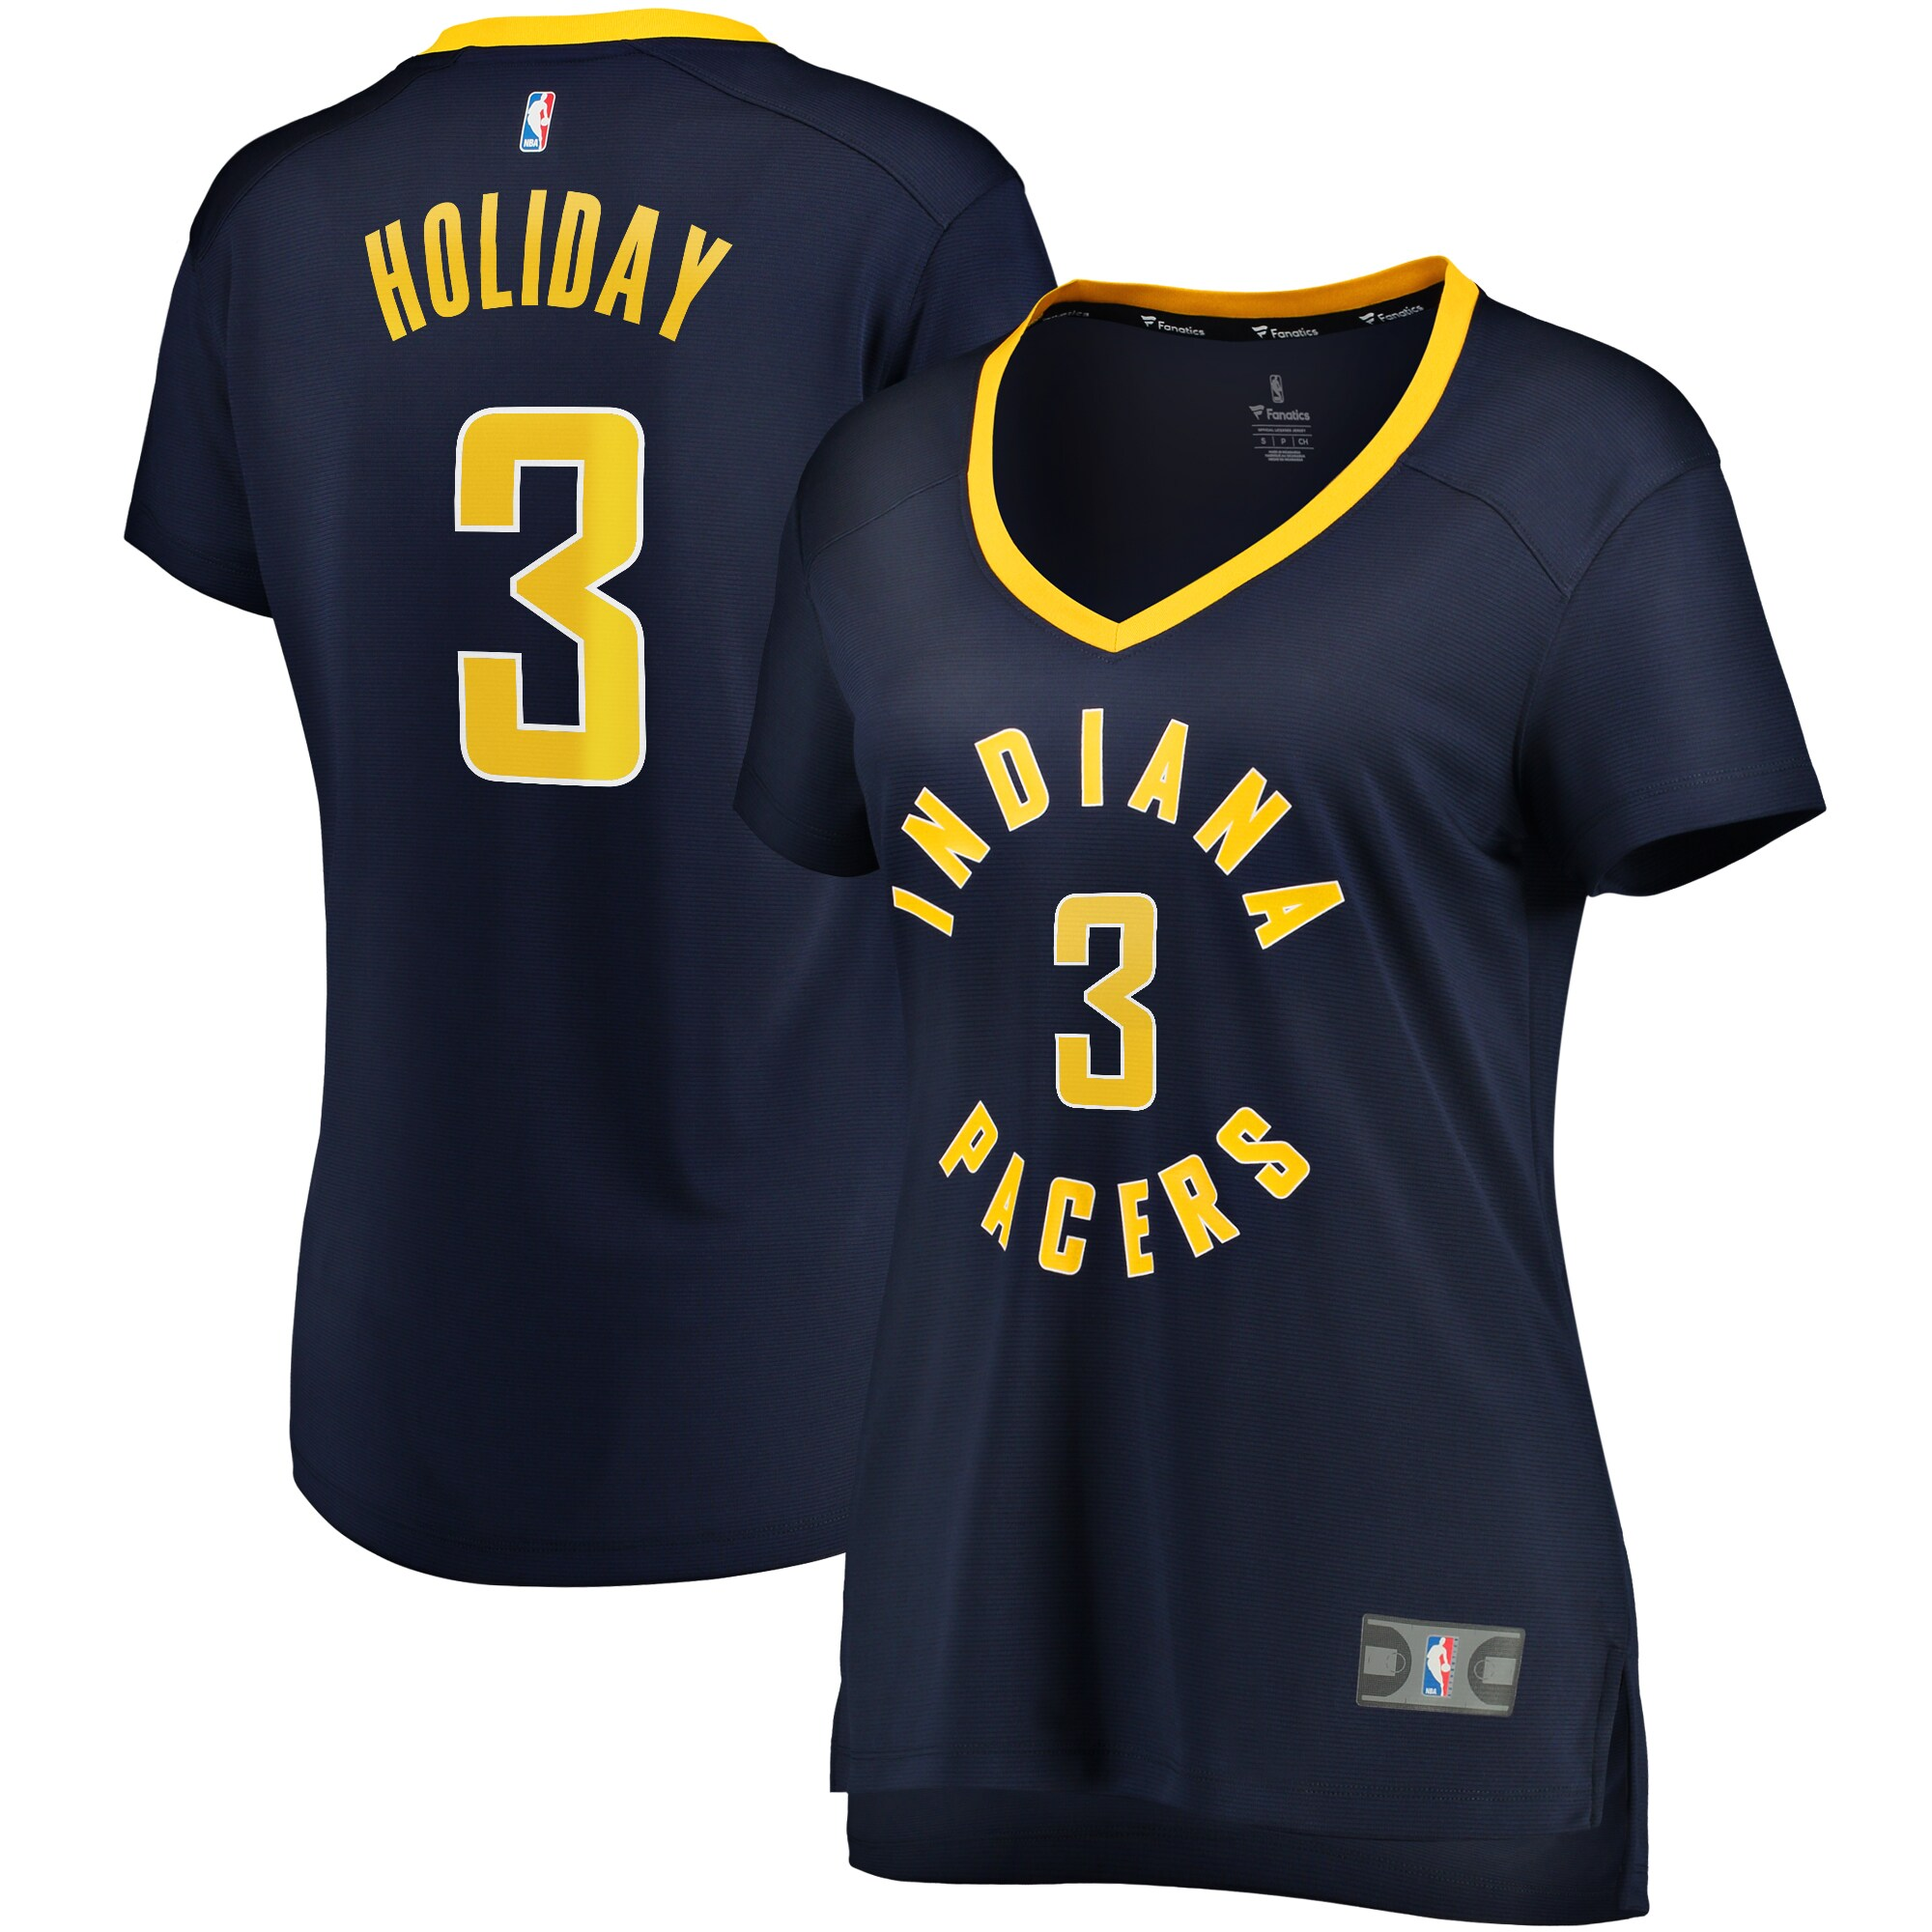 Aaron Holiday Indiana Pacers Fanatics Branded Women's Fast Break Player Replica Jersey - Icon Edition - Navy